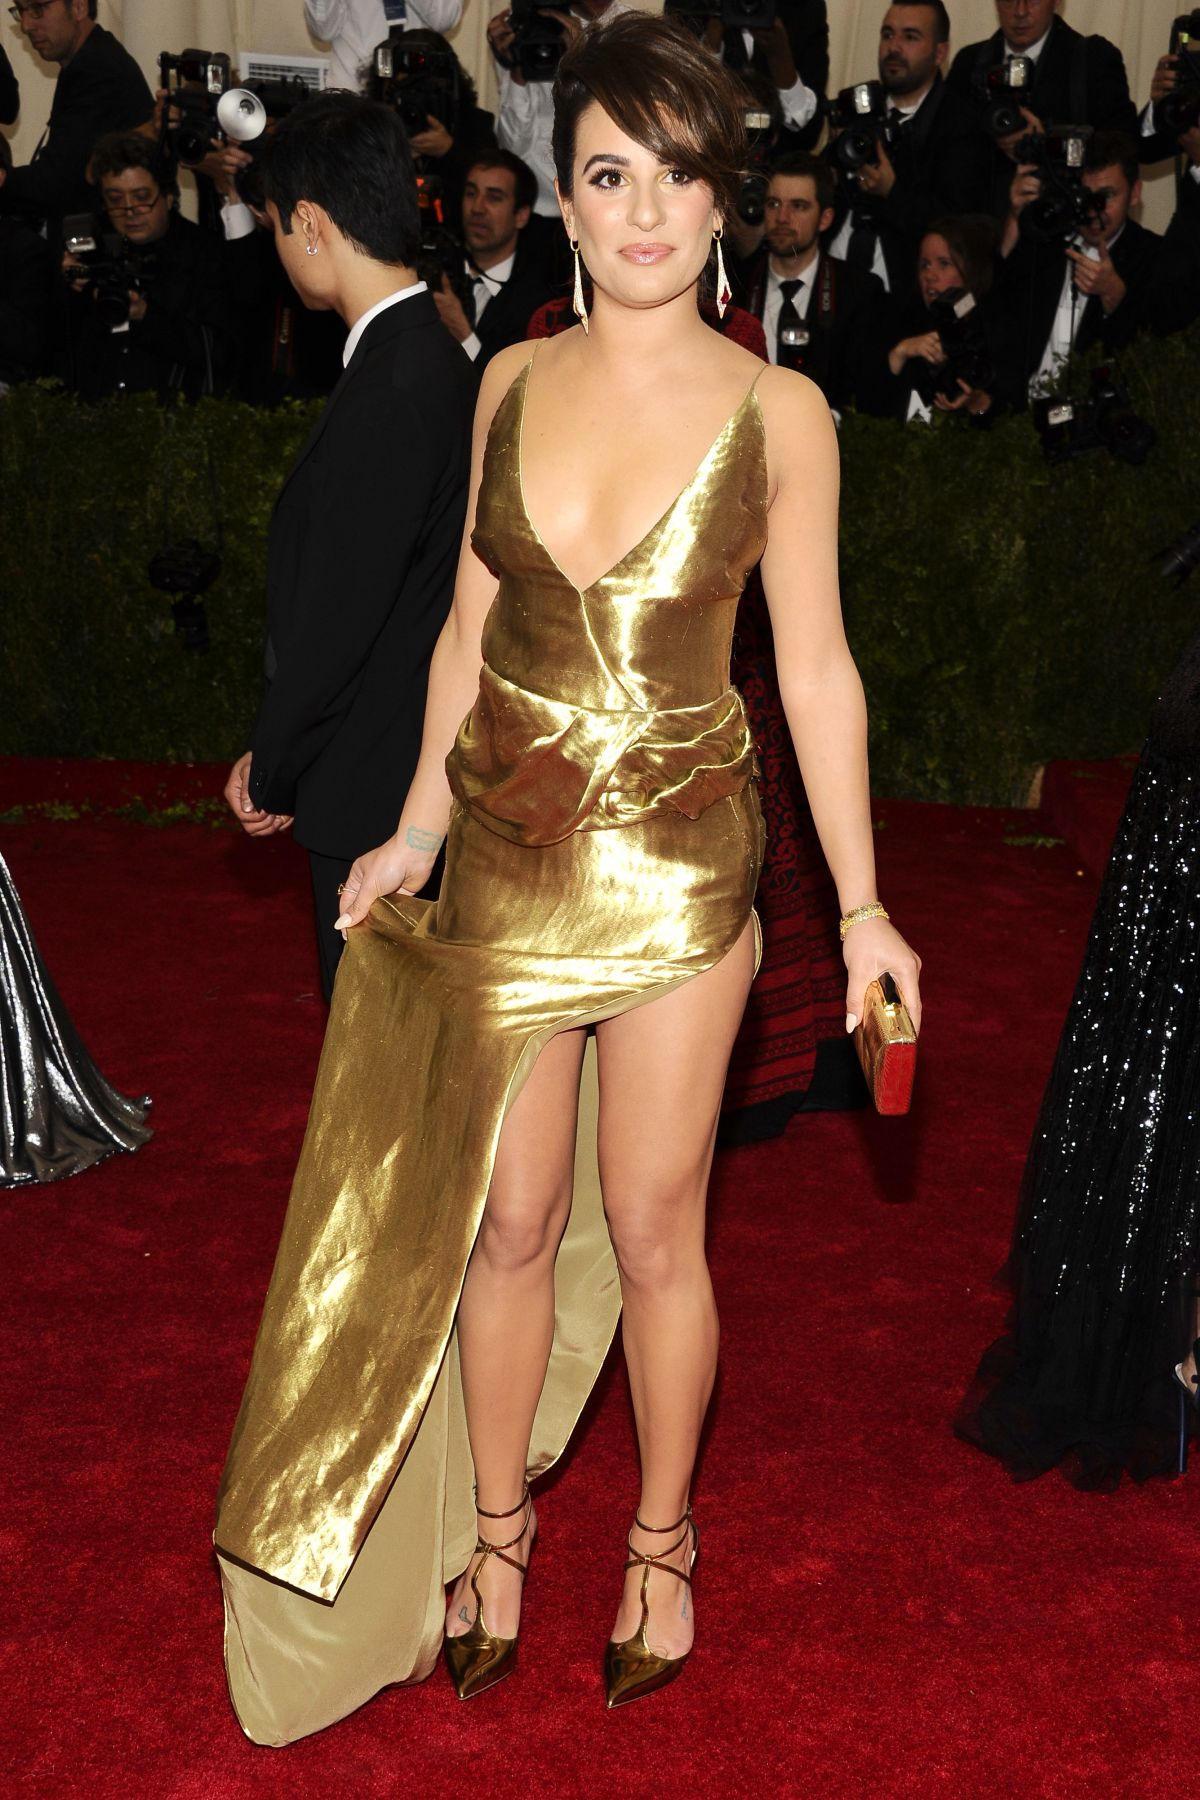 https://i0.wp.com/www.hawtcelebs.com/wp-content/uploads/2014/05/lea-michele-at-met-gala-2014-in-new-york_1.jpg